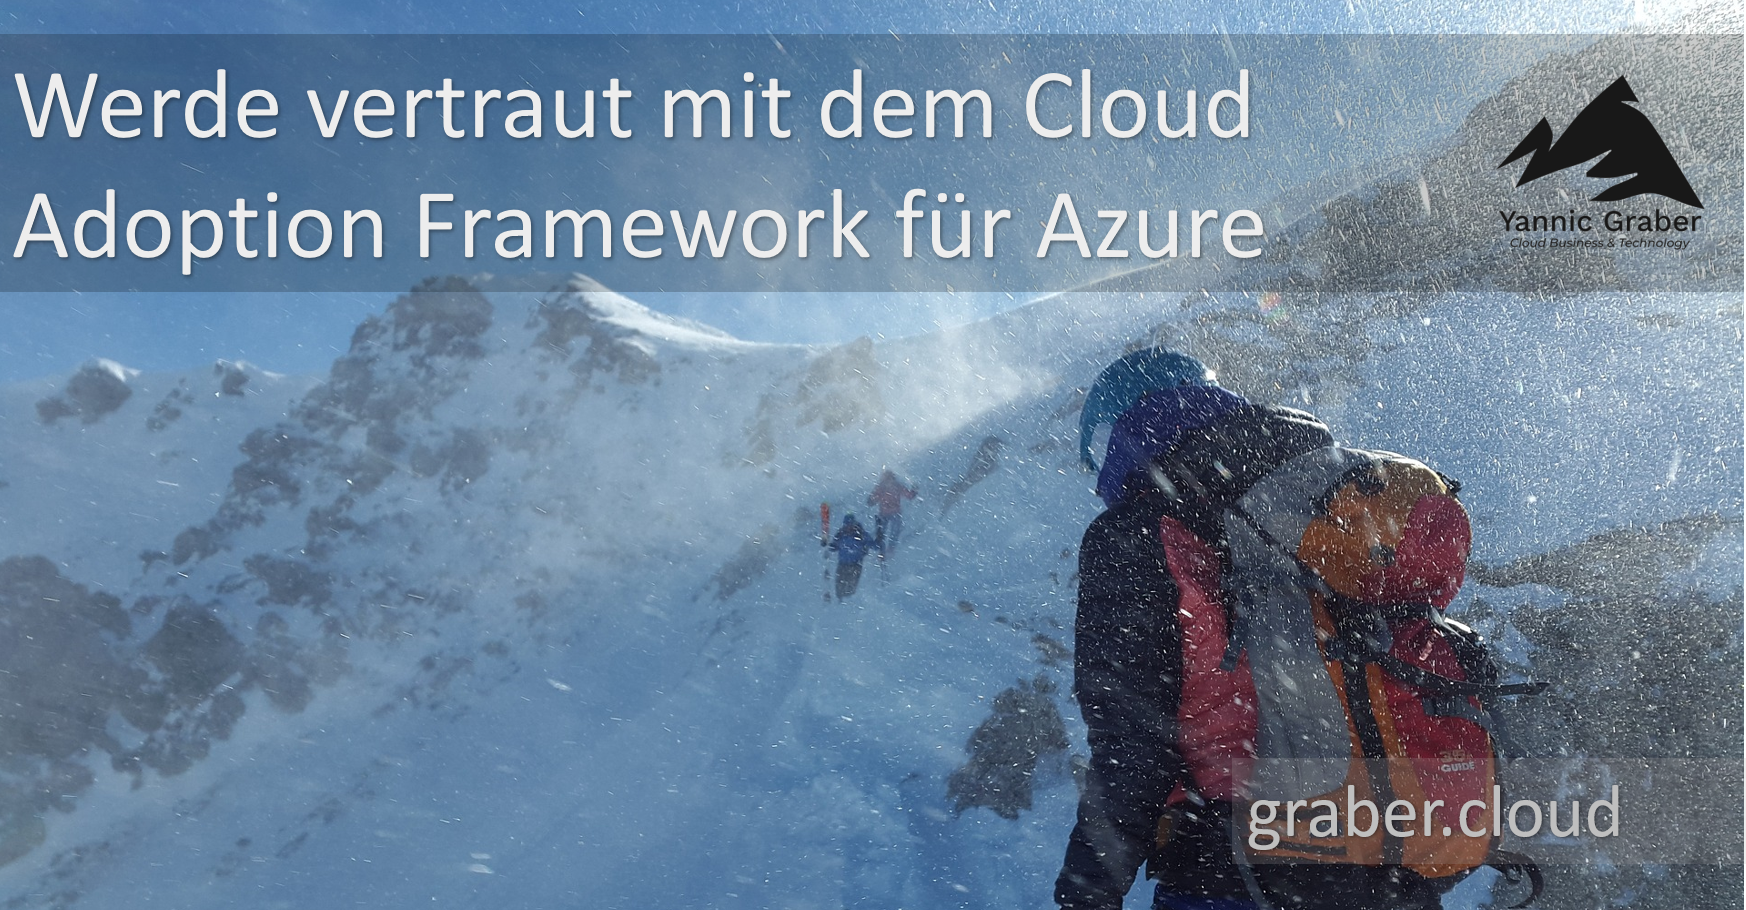 get used to the Cloud Adoption Framework by Yannic Graber